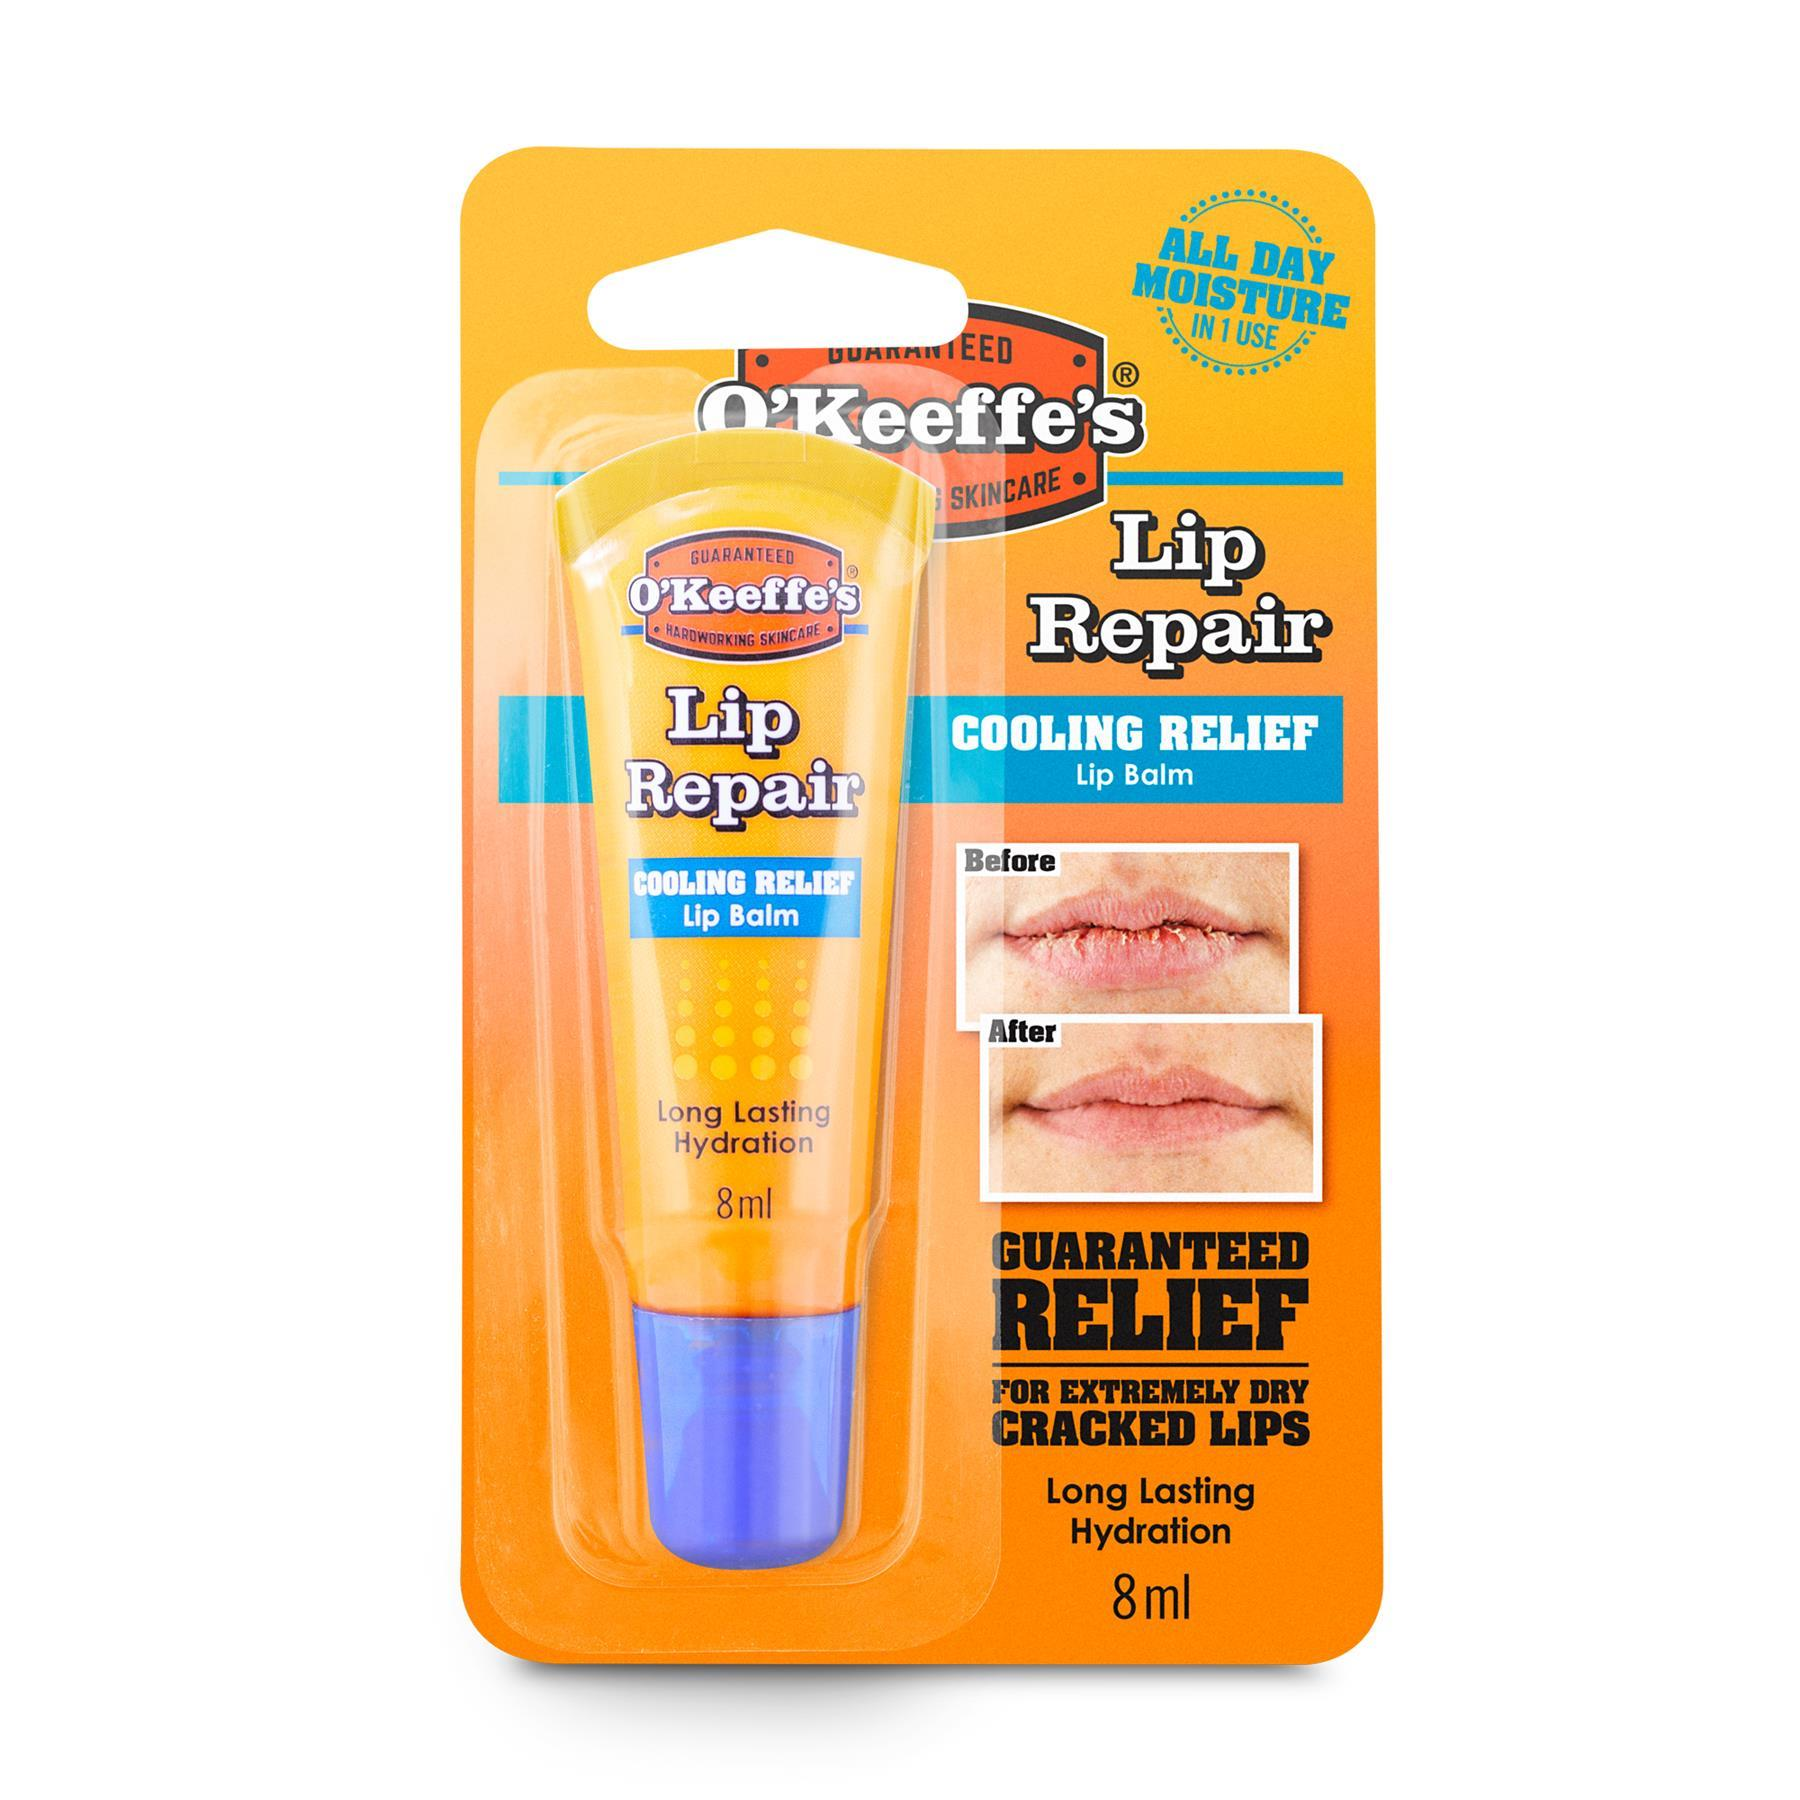 O'Keeffe's Lip Repair Cooling Relief Balm 8ml